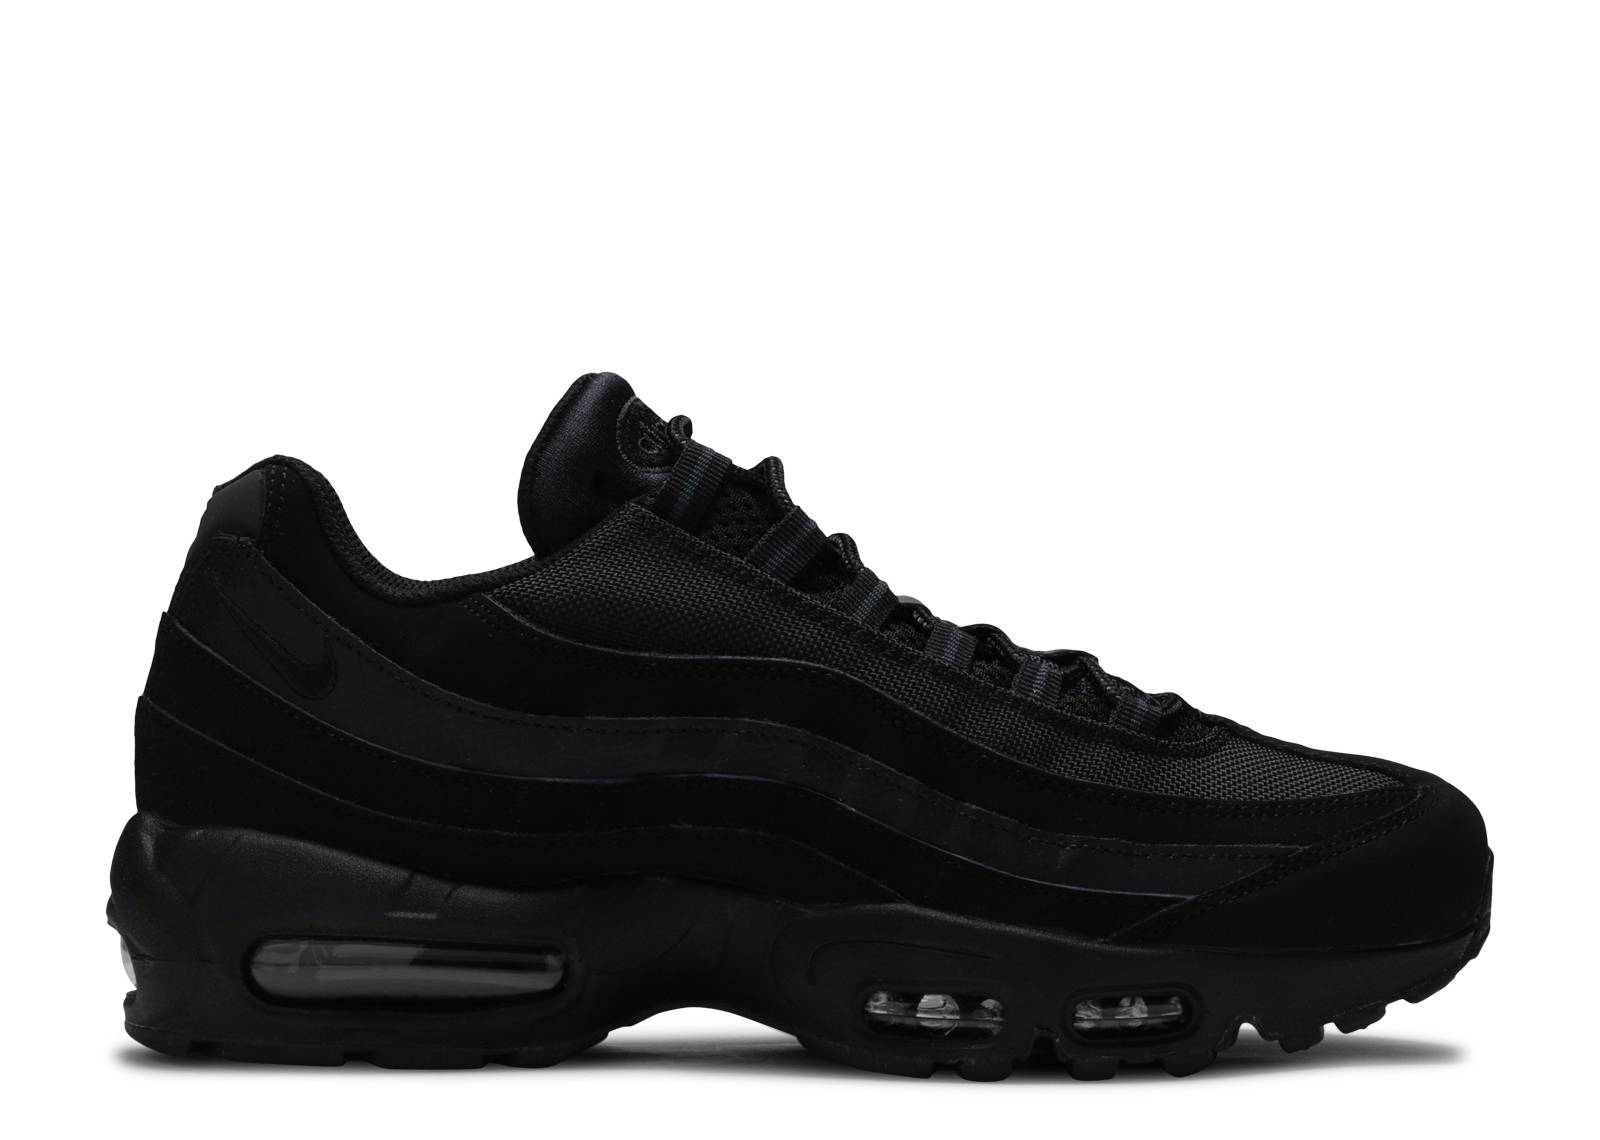 9a84eedaef85 Nike Air Max 95 - Men s   Women s Shoes